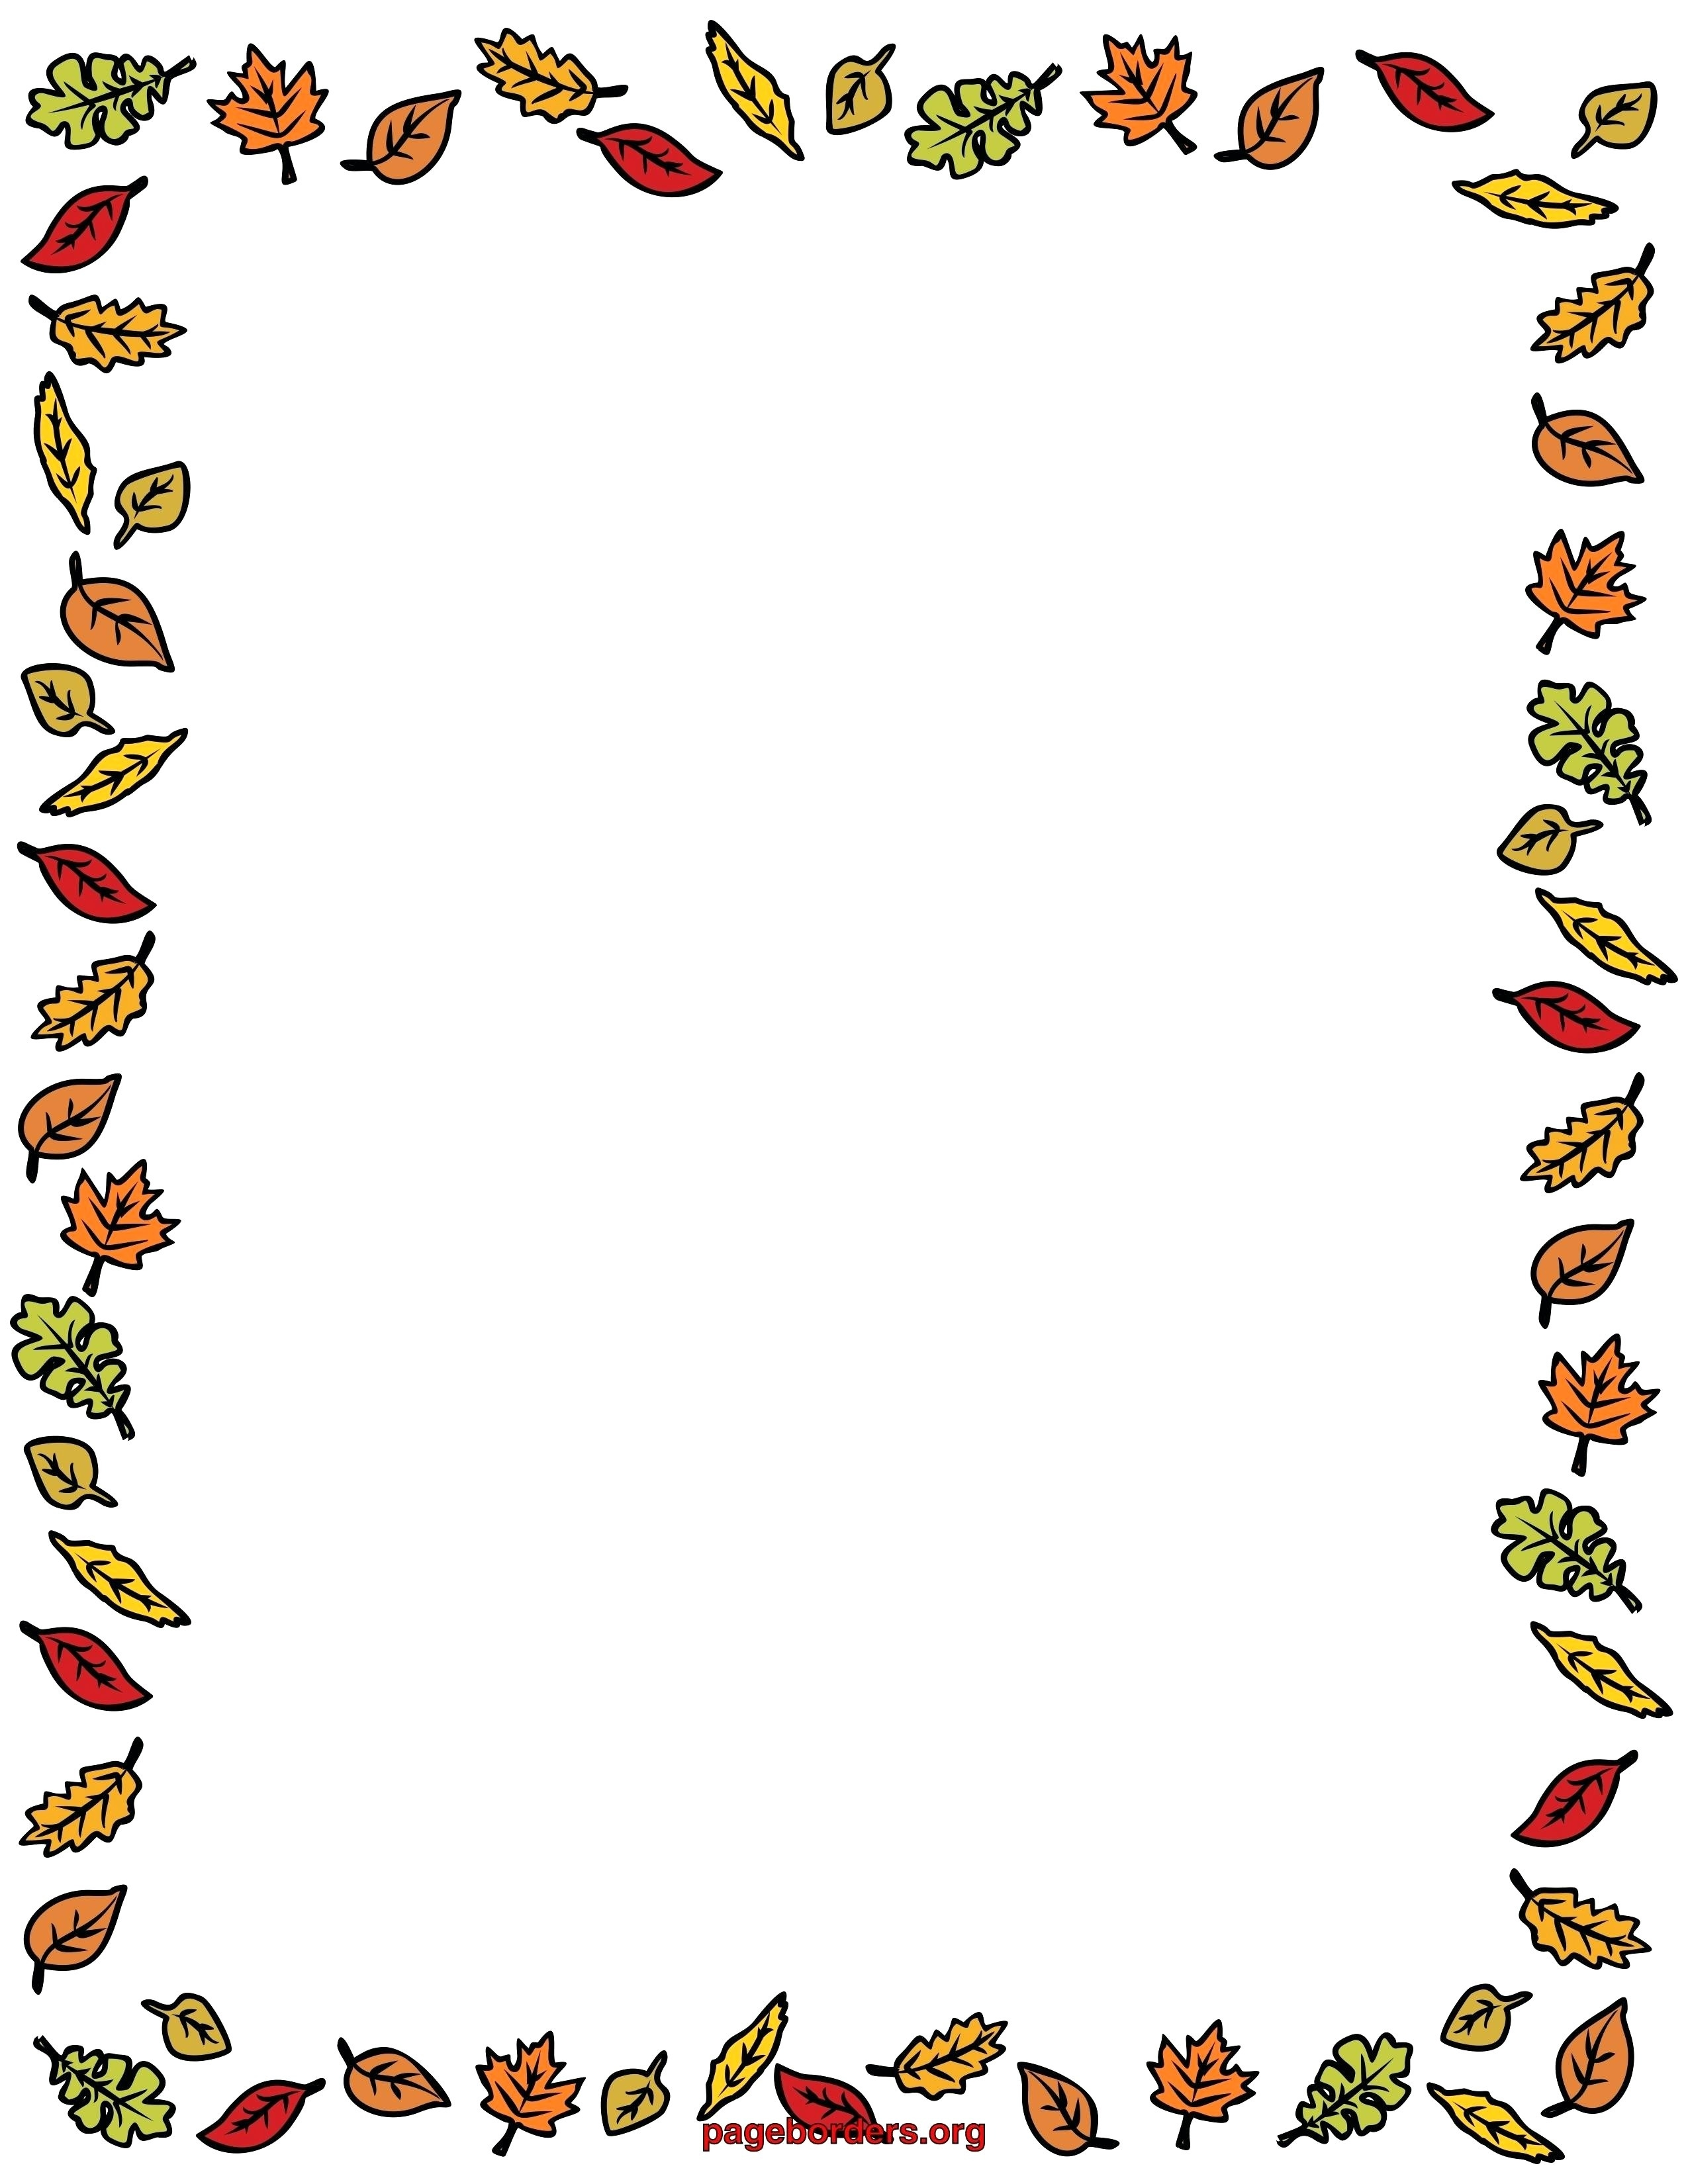 Fall Leaves Border Clipart Panda Free Images Amazing Borders.